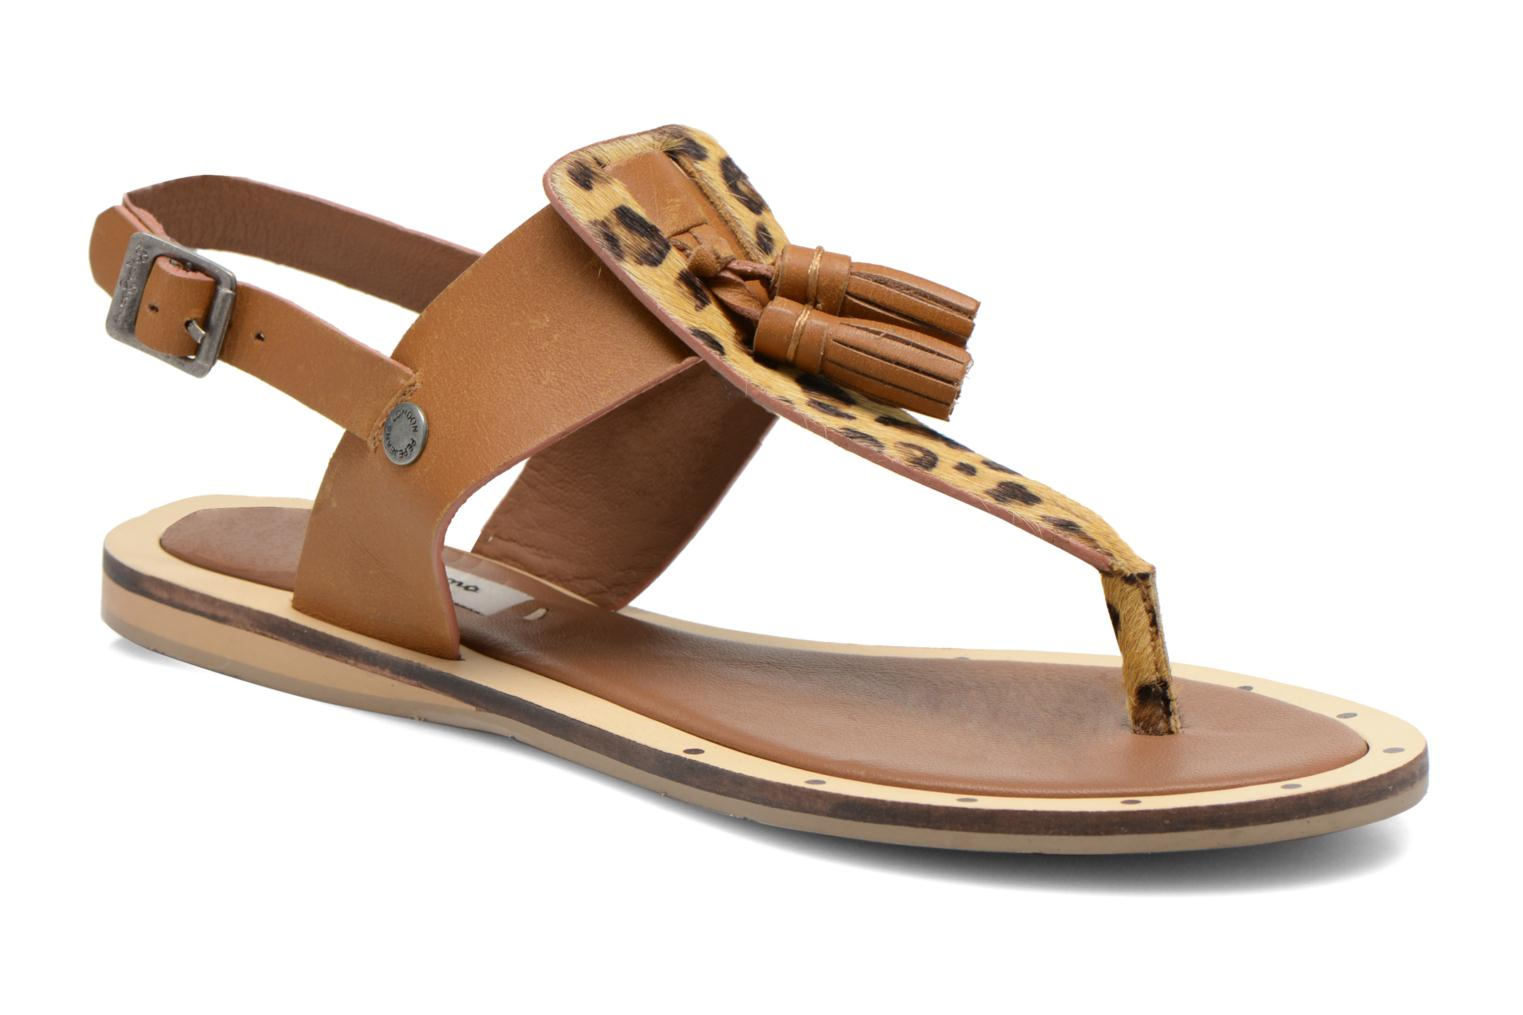 Marques Chaussure femme Pepe jeans femme Gayton Tassels Nut brown